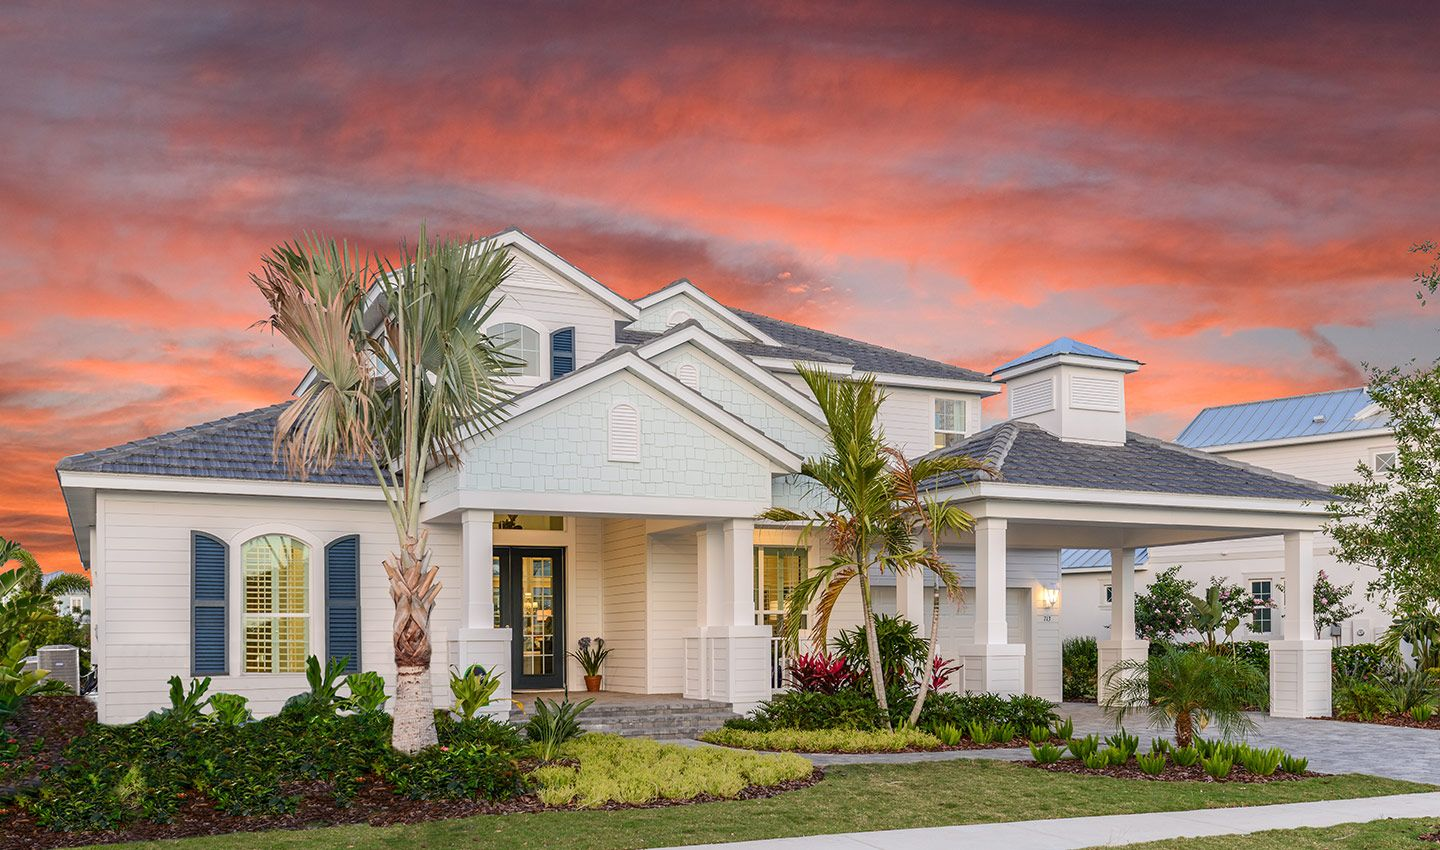 Additional photo for property listing at Mirabay - Siesta Key 2 713 Manns Harbor Drive Apollo Beach, Florida 33572 United States